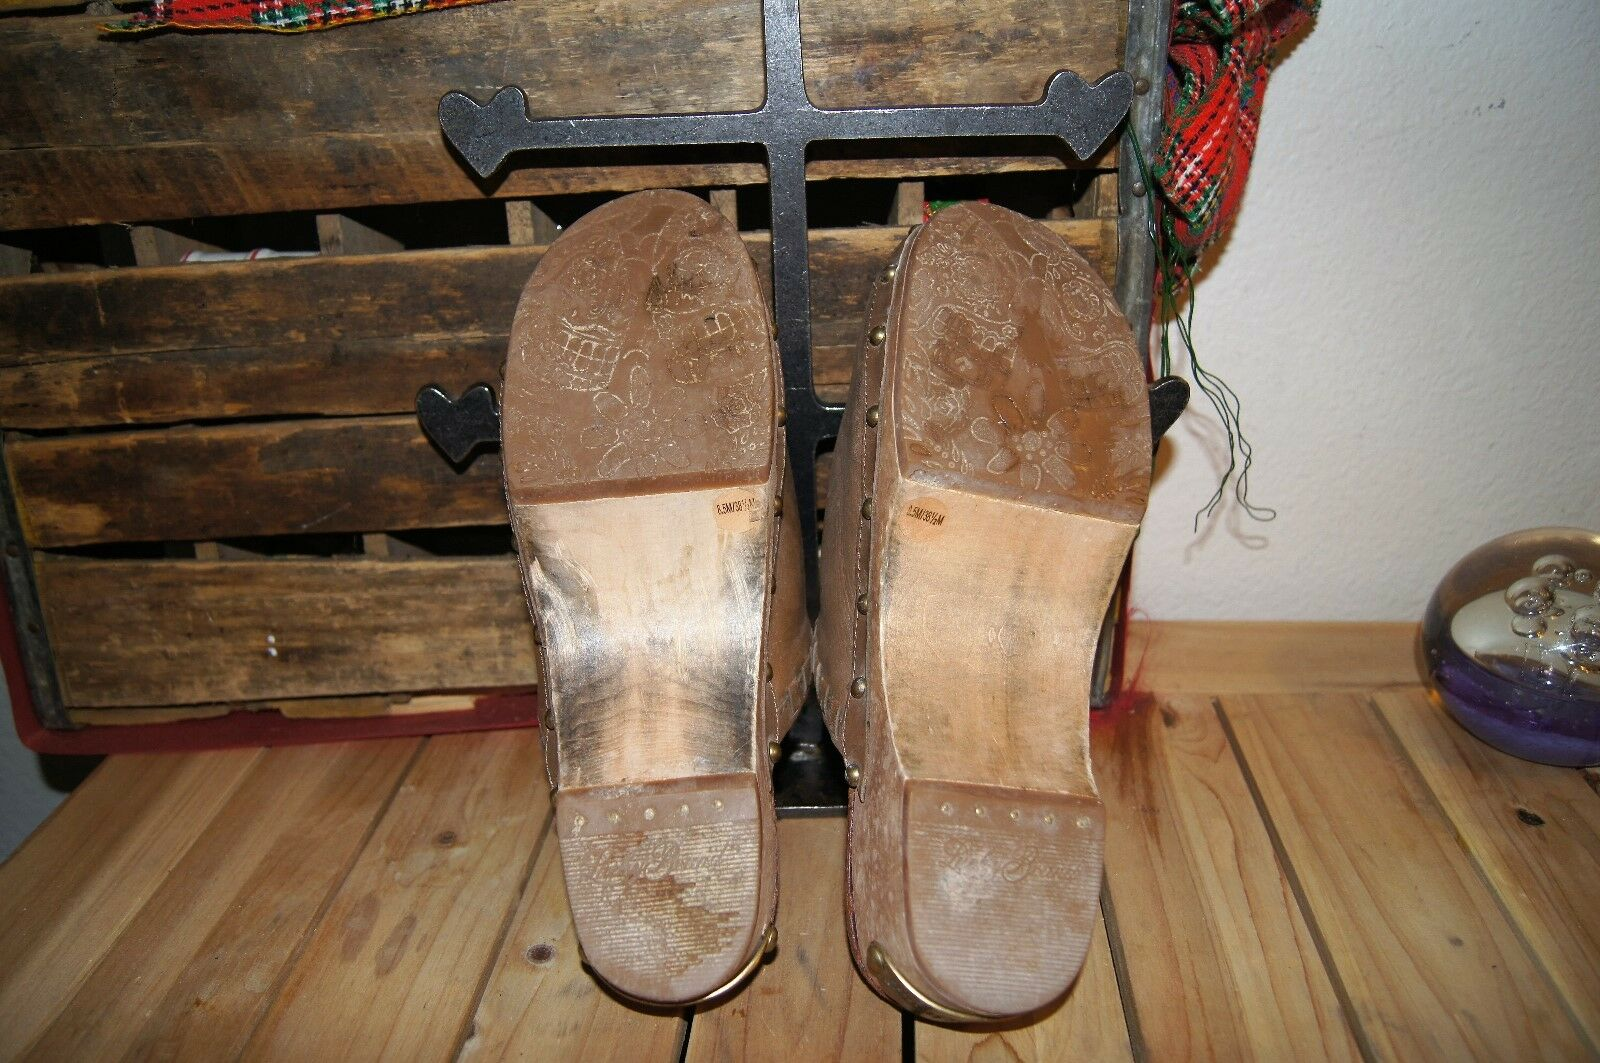 LUCKY BRAND Clogs 8.5 Peace CLOGS Size 8.5 LEATHER SHOES CLOGS 8.5 LUCKY SHOES LEATHER 8.5 a79bde